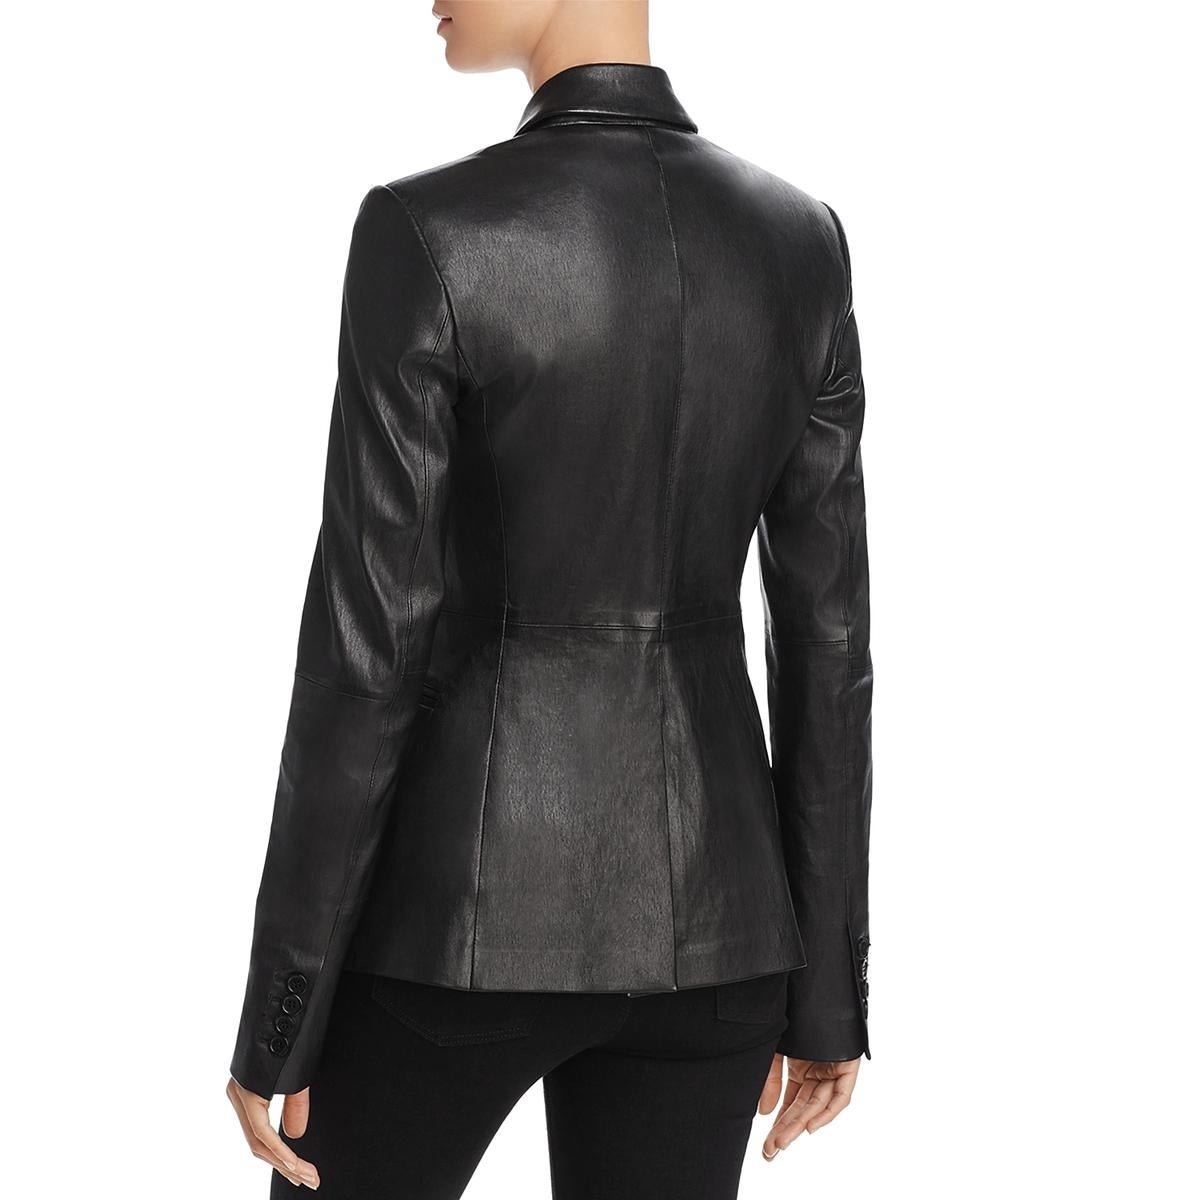 ce5f5077a Theory Womens Bristol Leather Jacket Winter Double Breasted